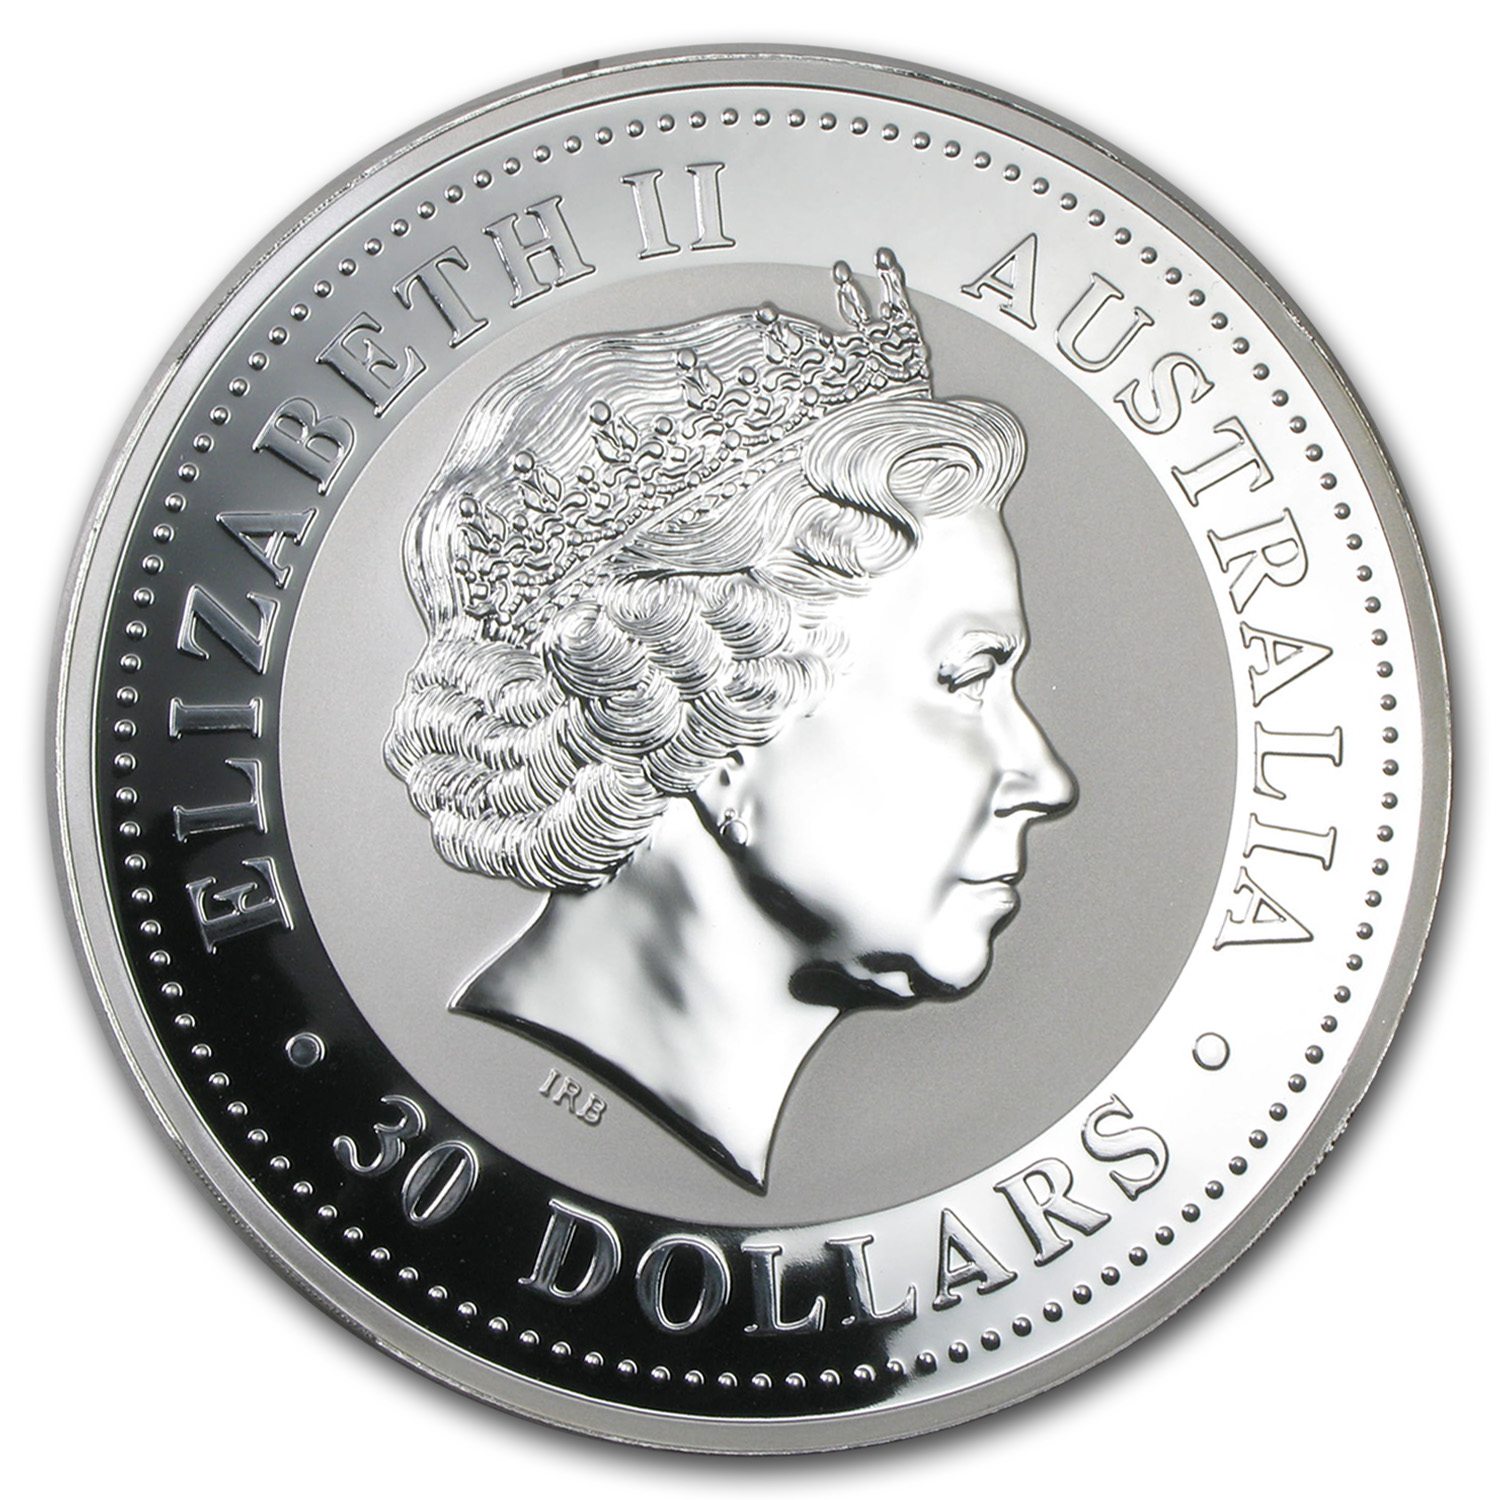 1999 1 kilo Silver Lunar Year of the Rabbit (Series I)